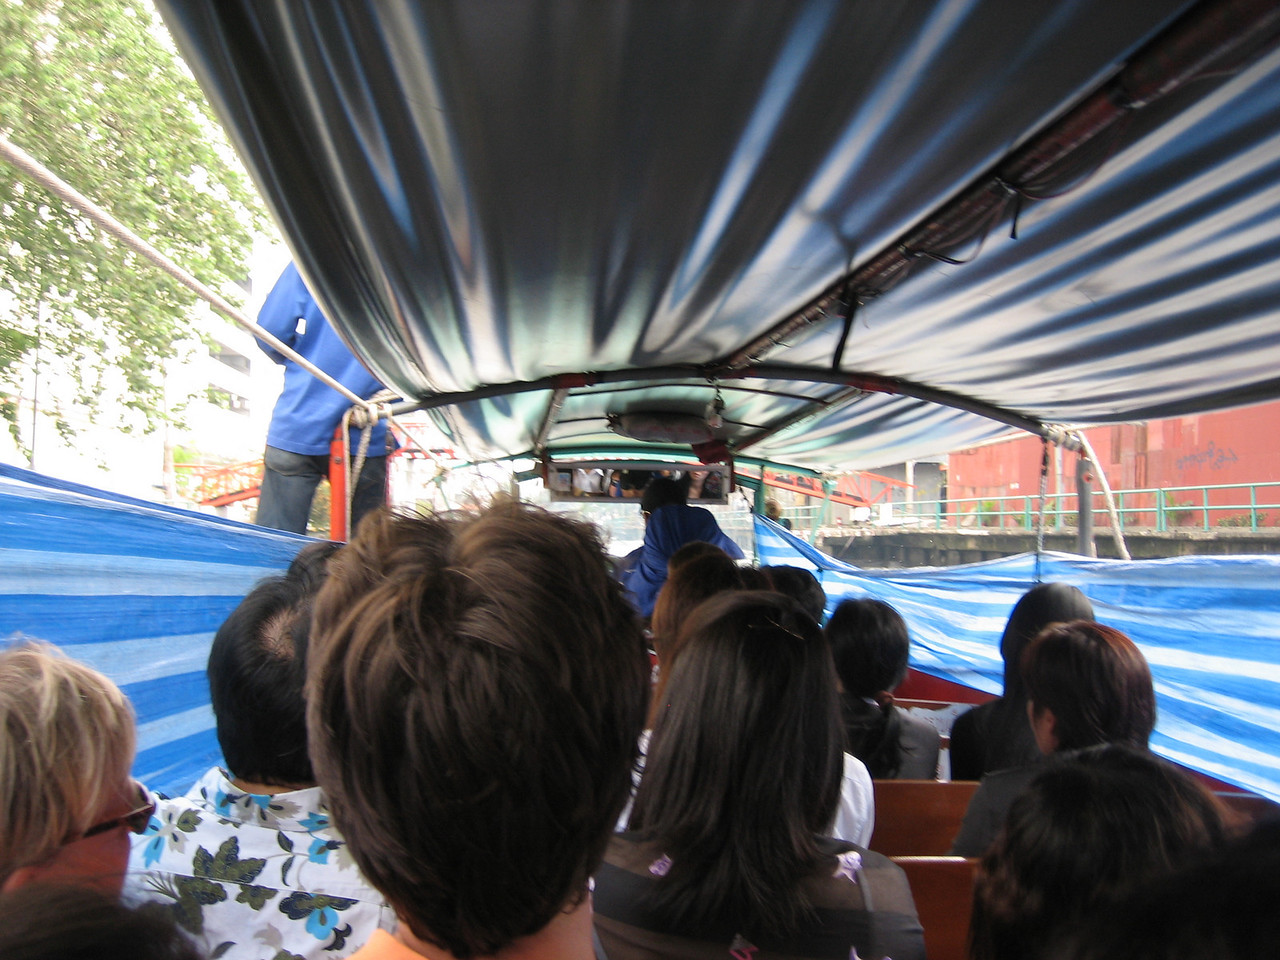 Blue & white tarps keep the splashes off and the metal roof lowers for bridges.  Better than a ride at Disneyland!